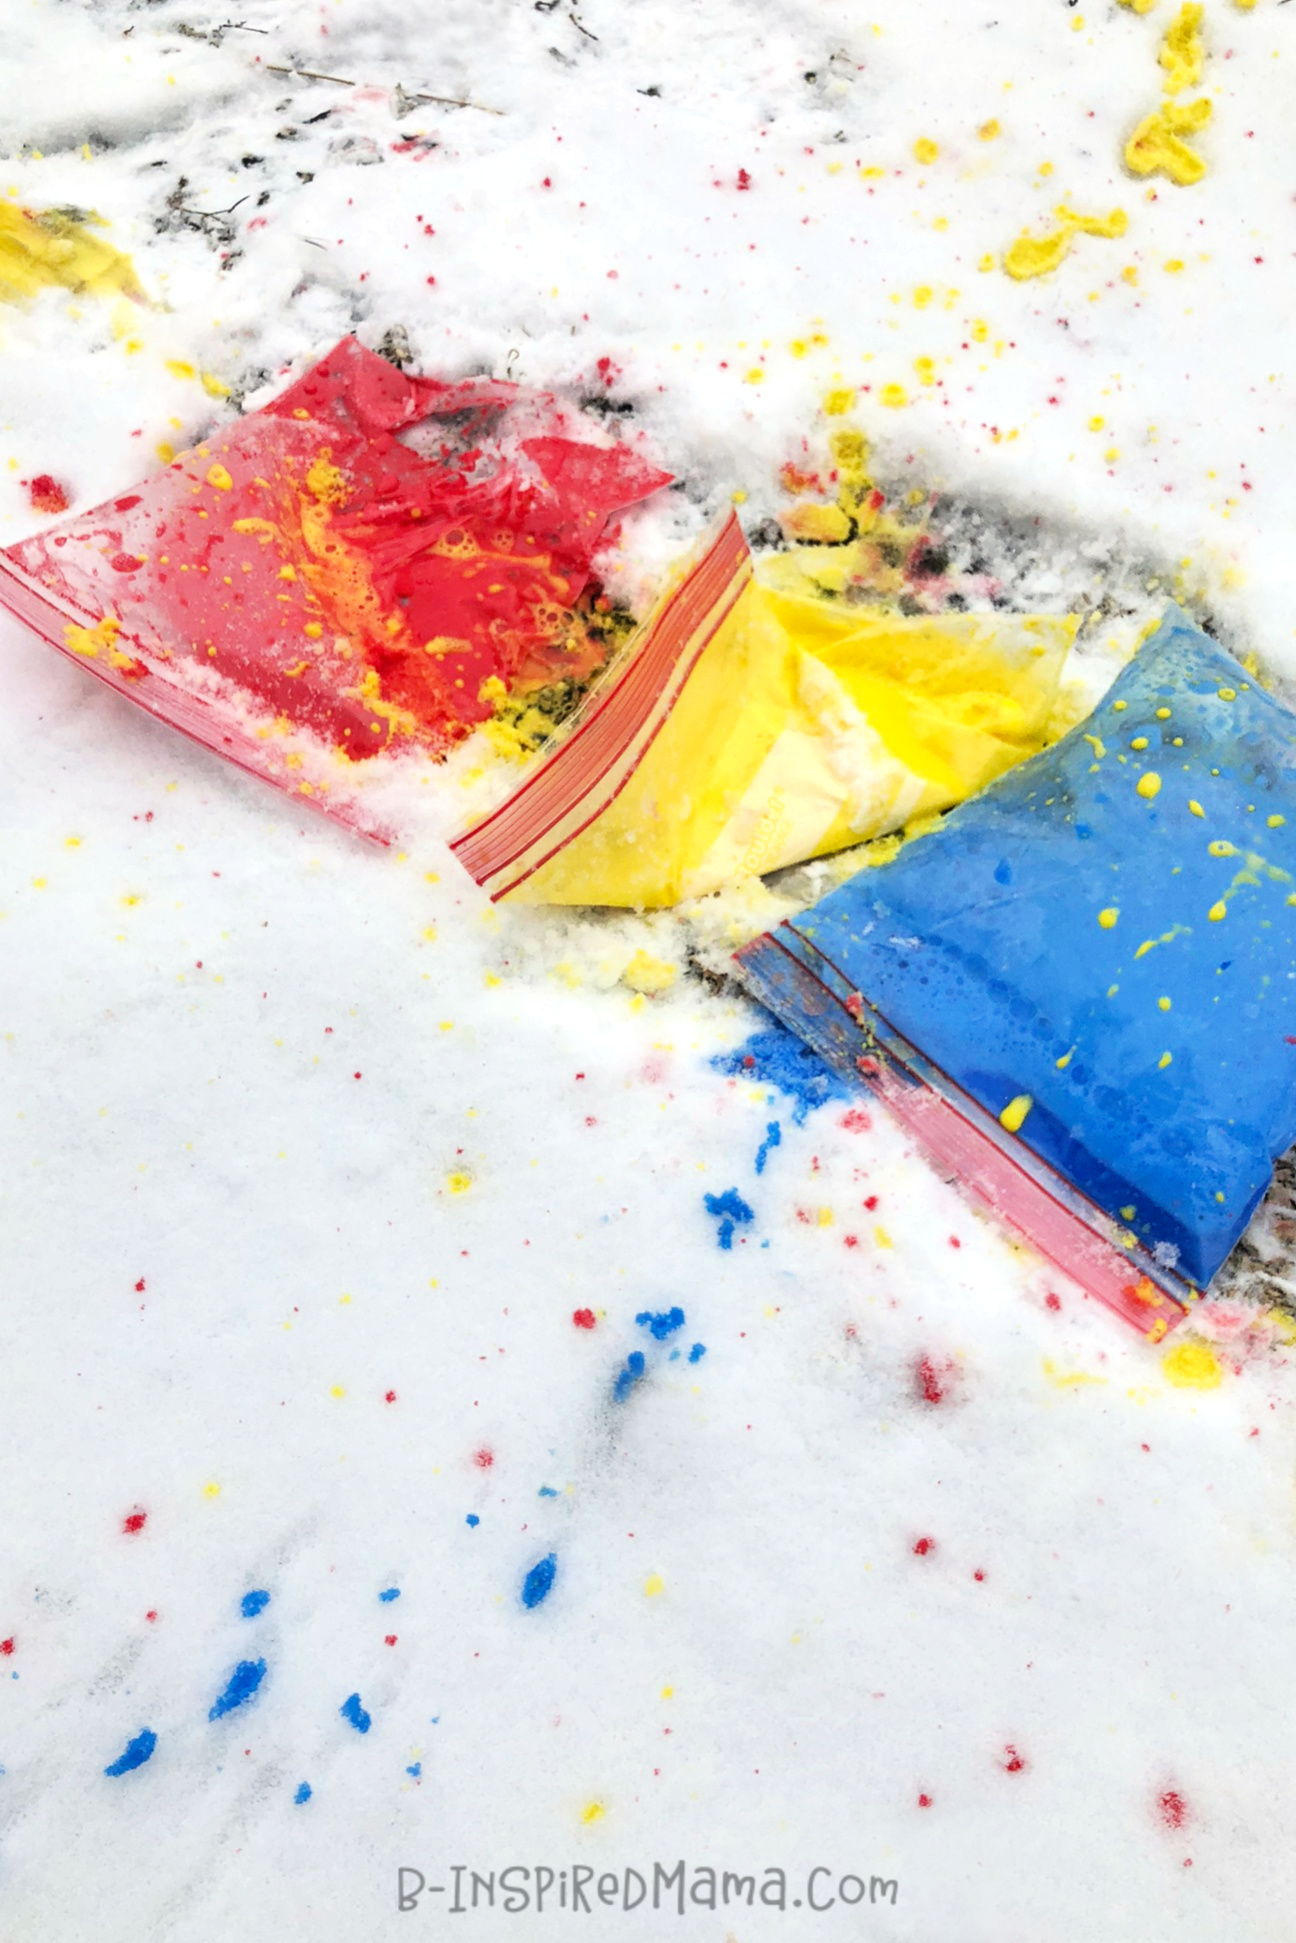 Stomp and Splash for Colorful, Active, Messy, and FUN Outdoor Toddler Art - on the Sidewalk or in the Snow!